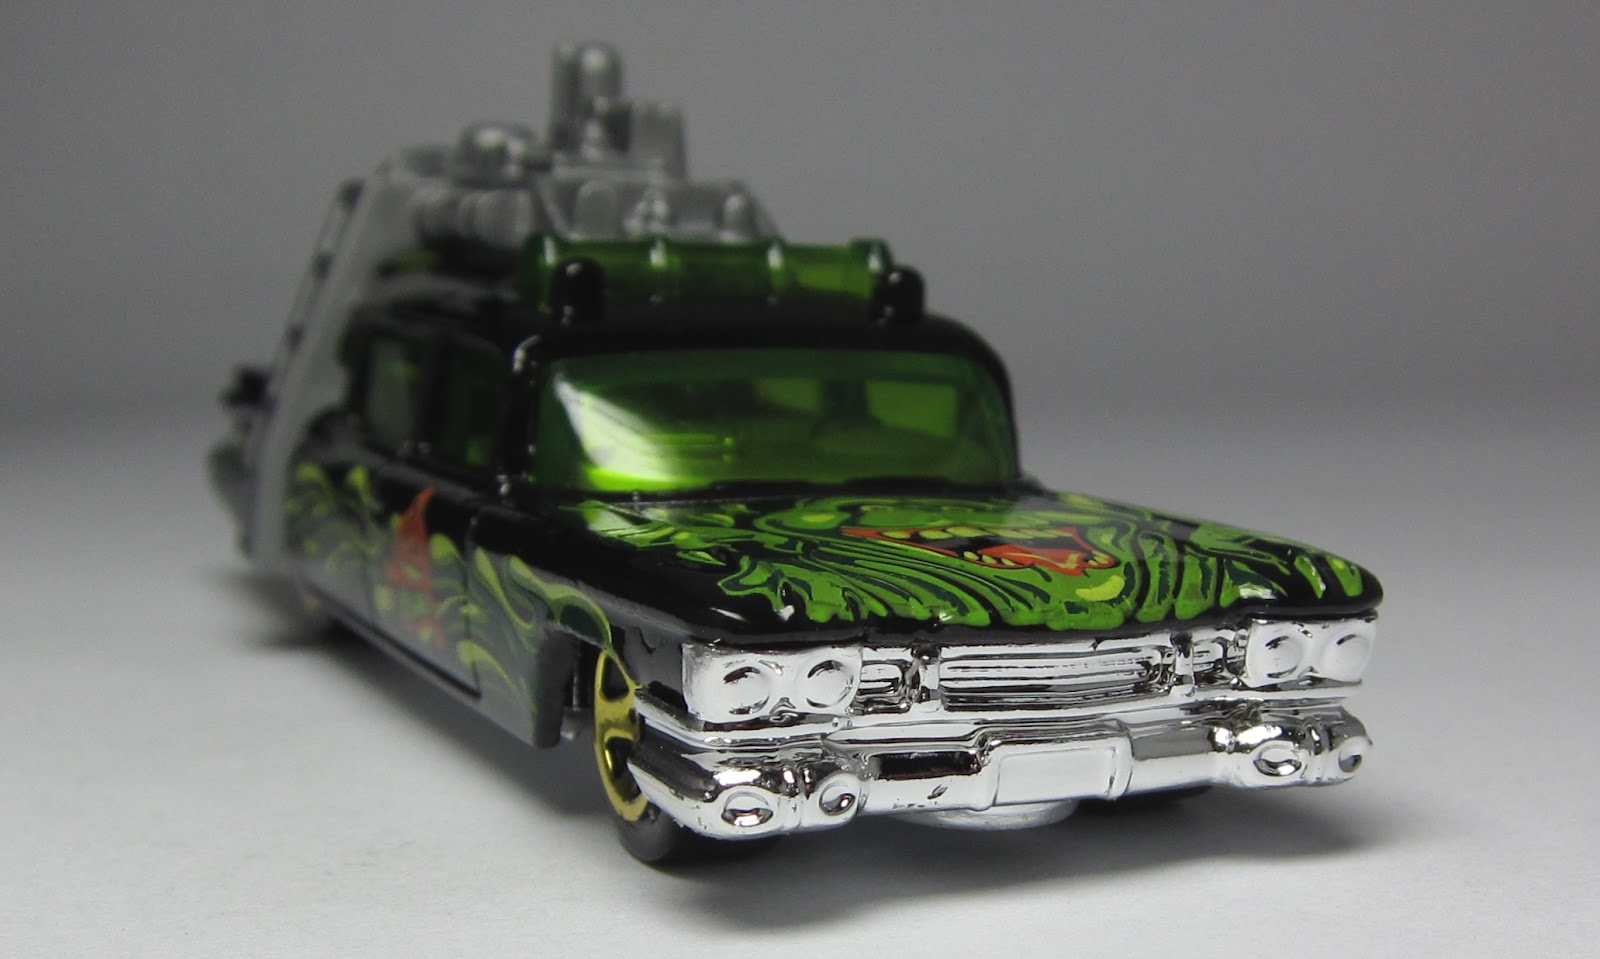 First look hot wheels halloween exclusive 1966 batmobile and first look hot wheels halloween exclusive 1966 batmobile and ghostbusters ecto 1 altavistaventures Choice Image